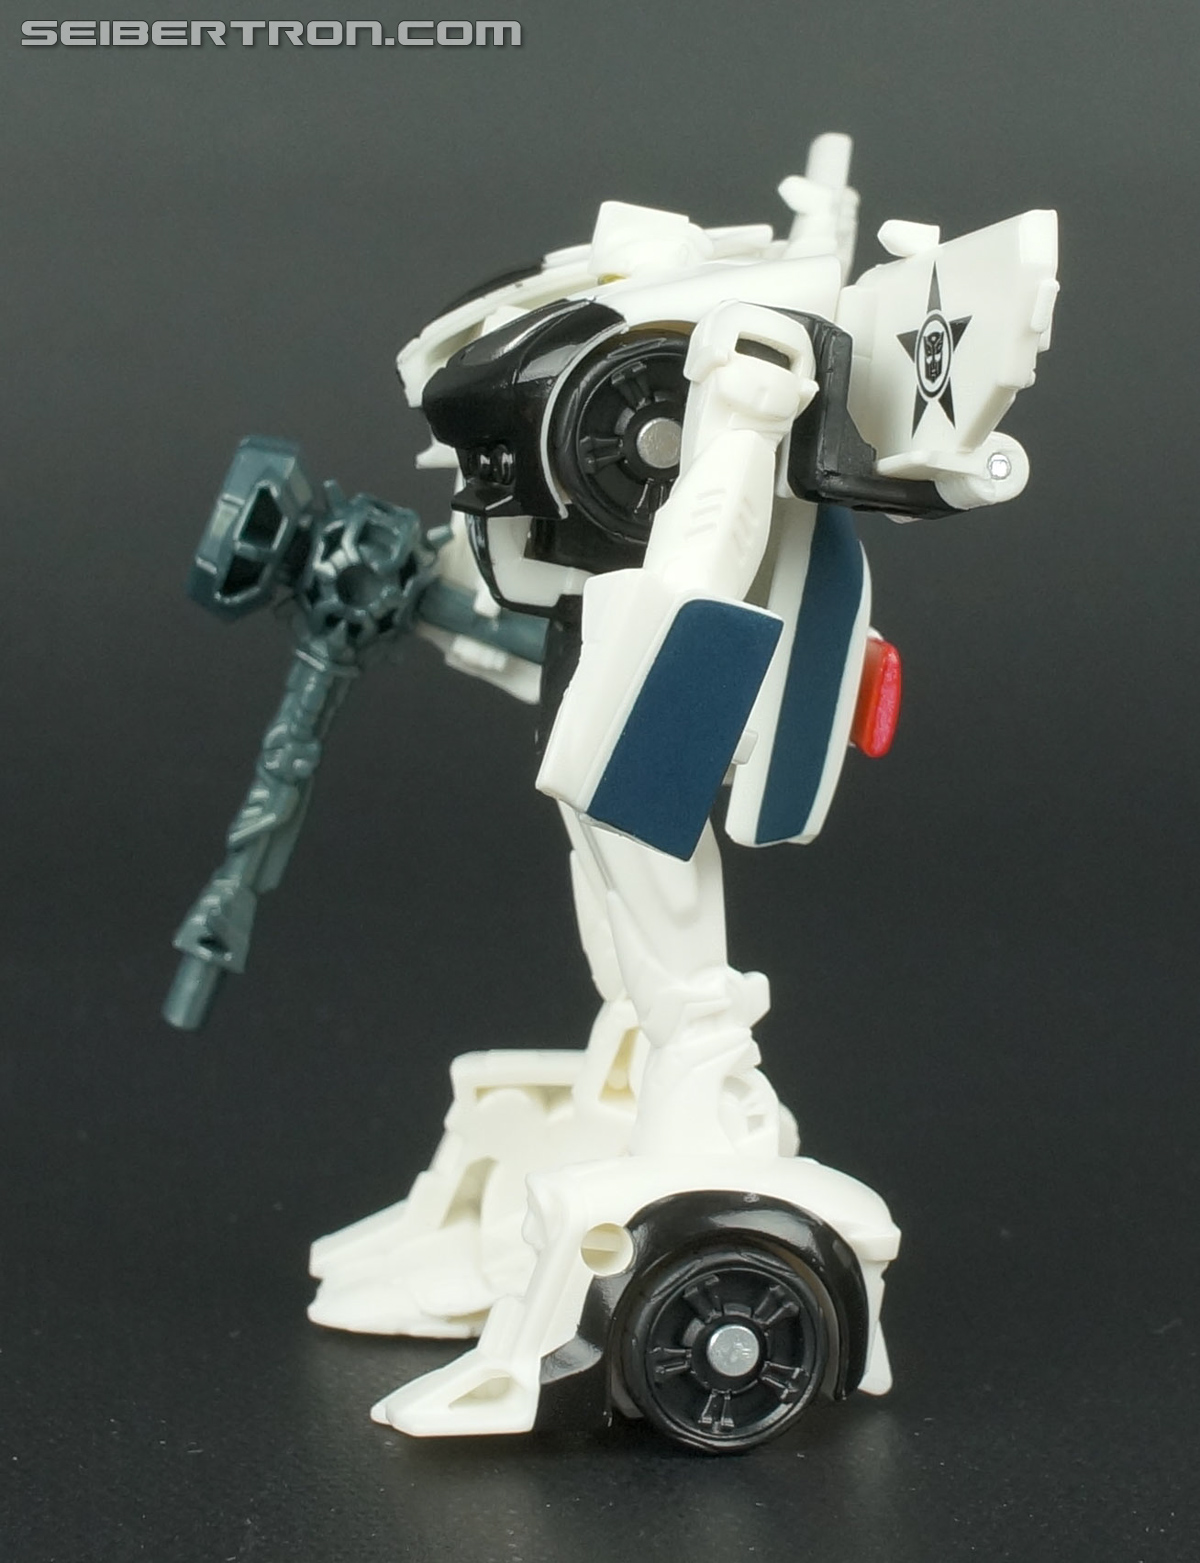 Transformers Prime Beast Hunters Cyberverse Prowl (Image #54 of 87)